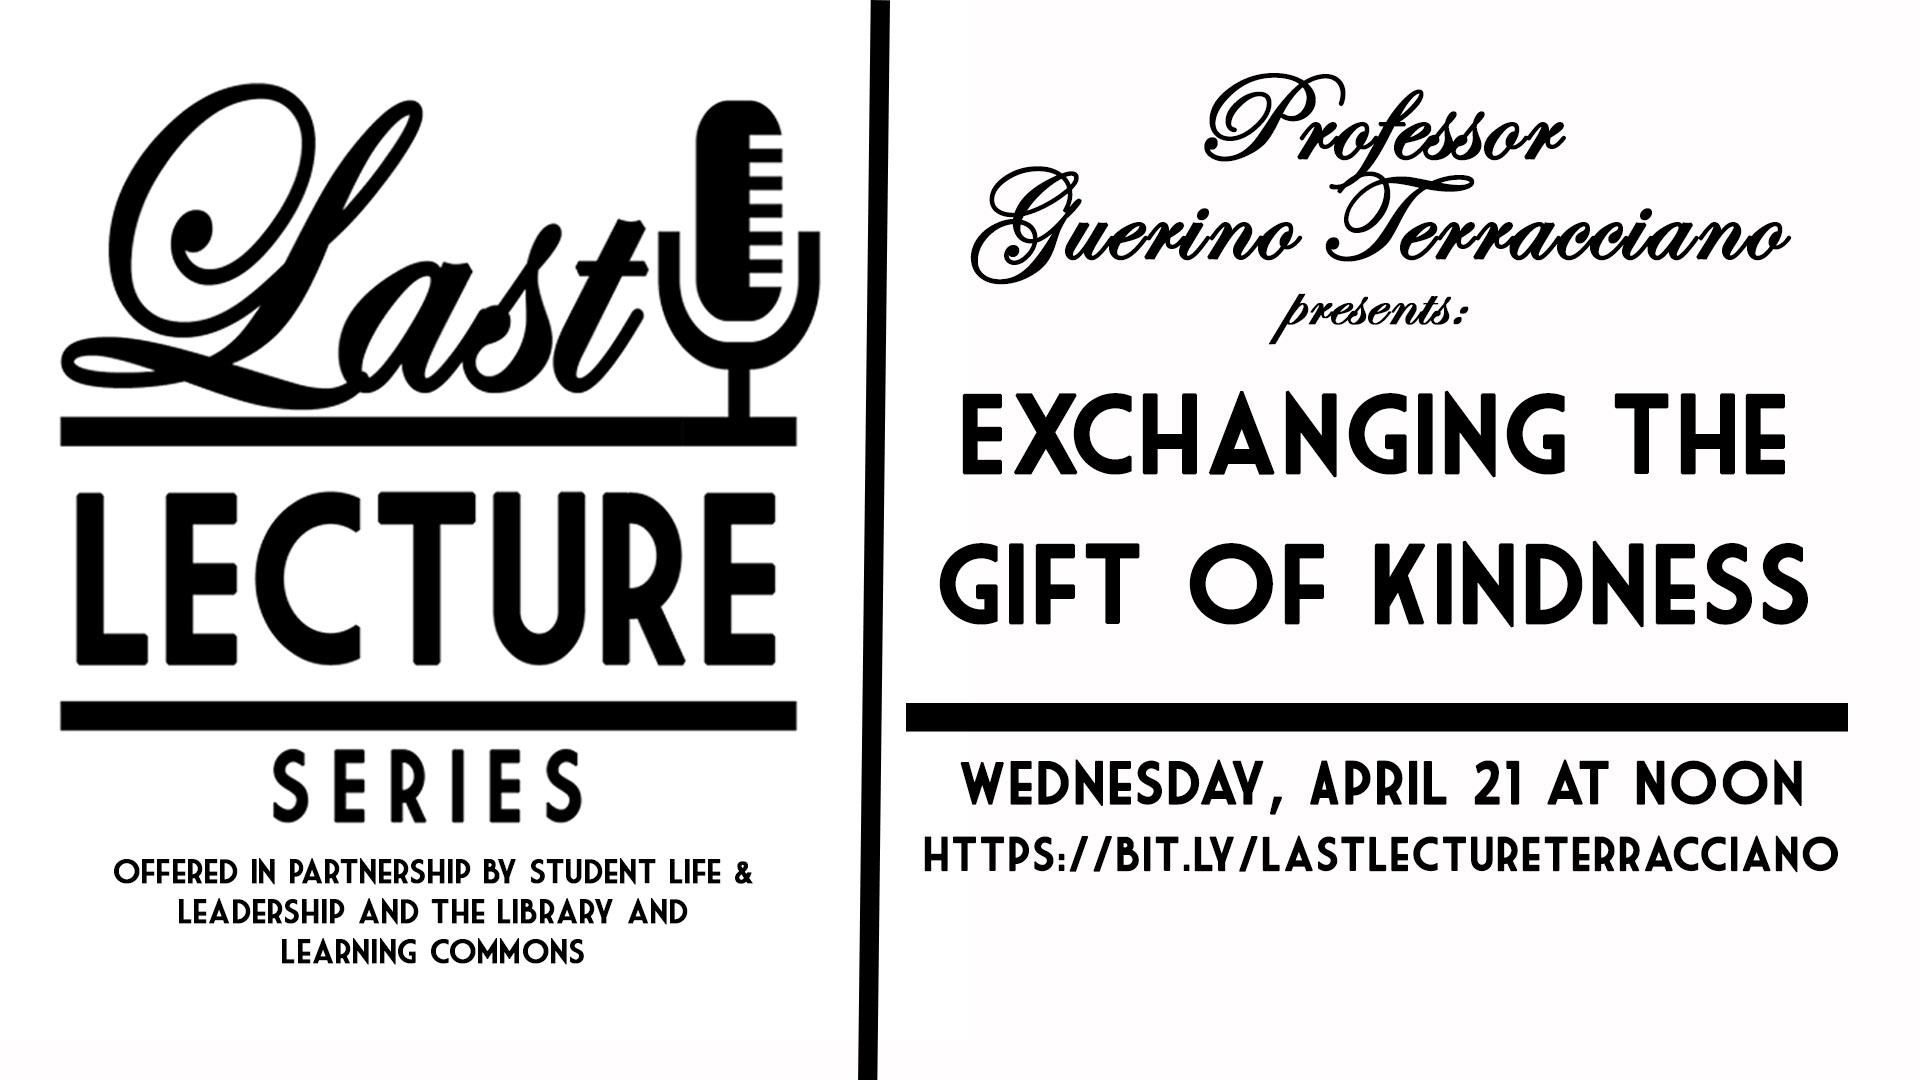 Last Lecture Series: Exchanging the Gift of Kindness with Prof. Guerino Terraciano